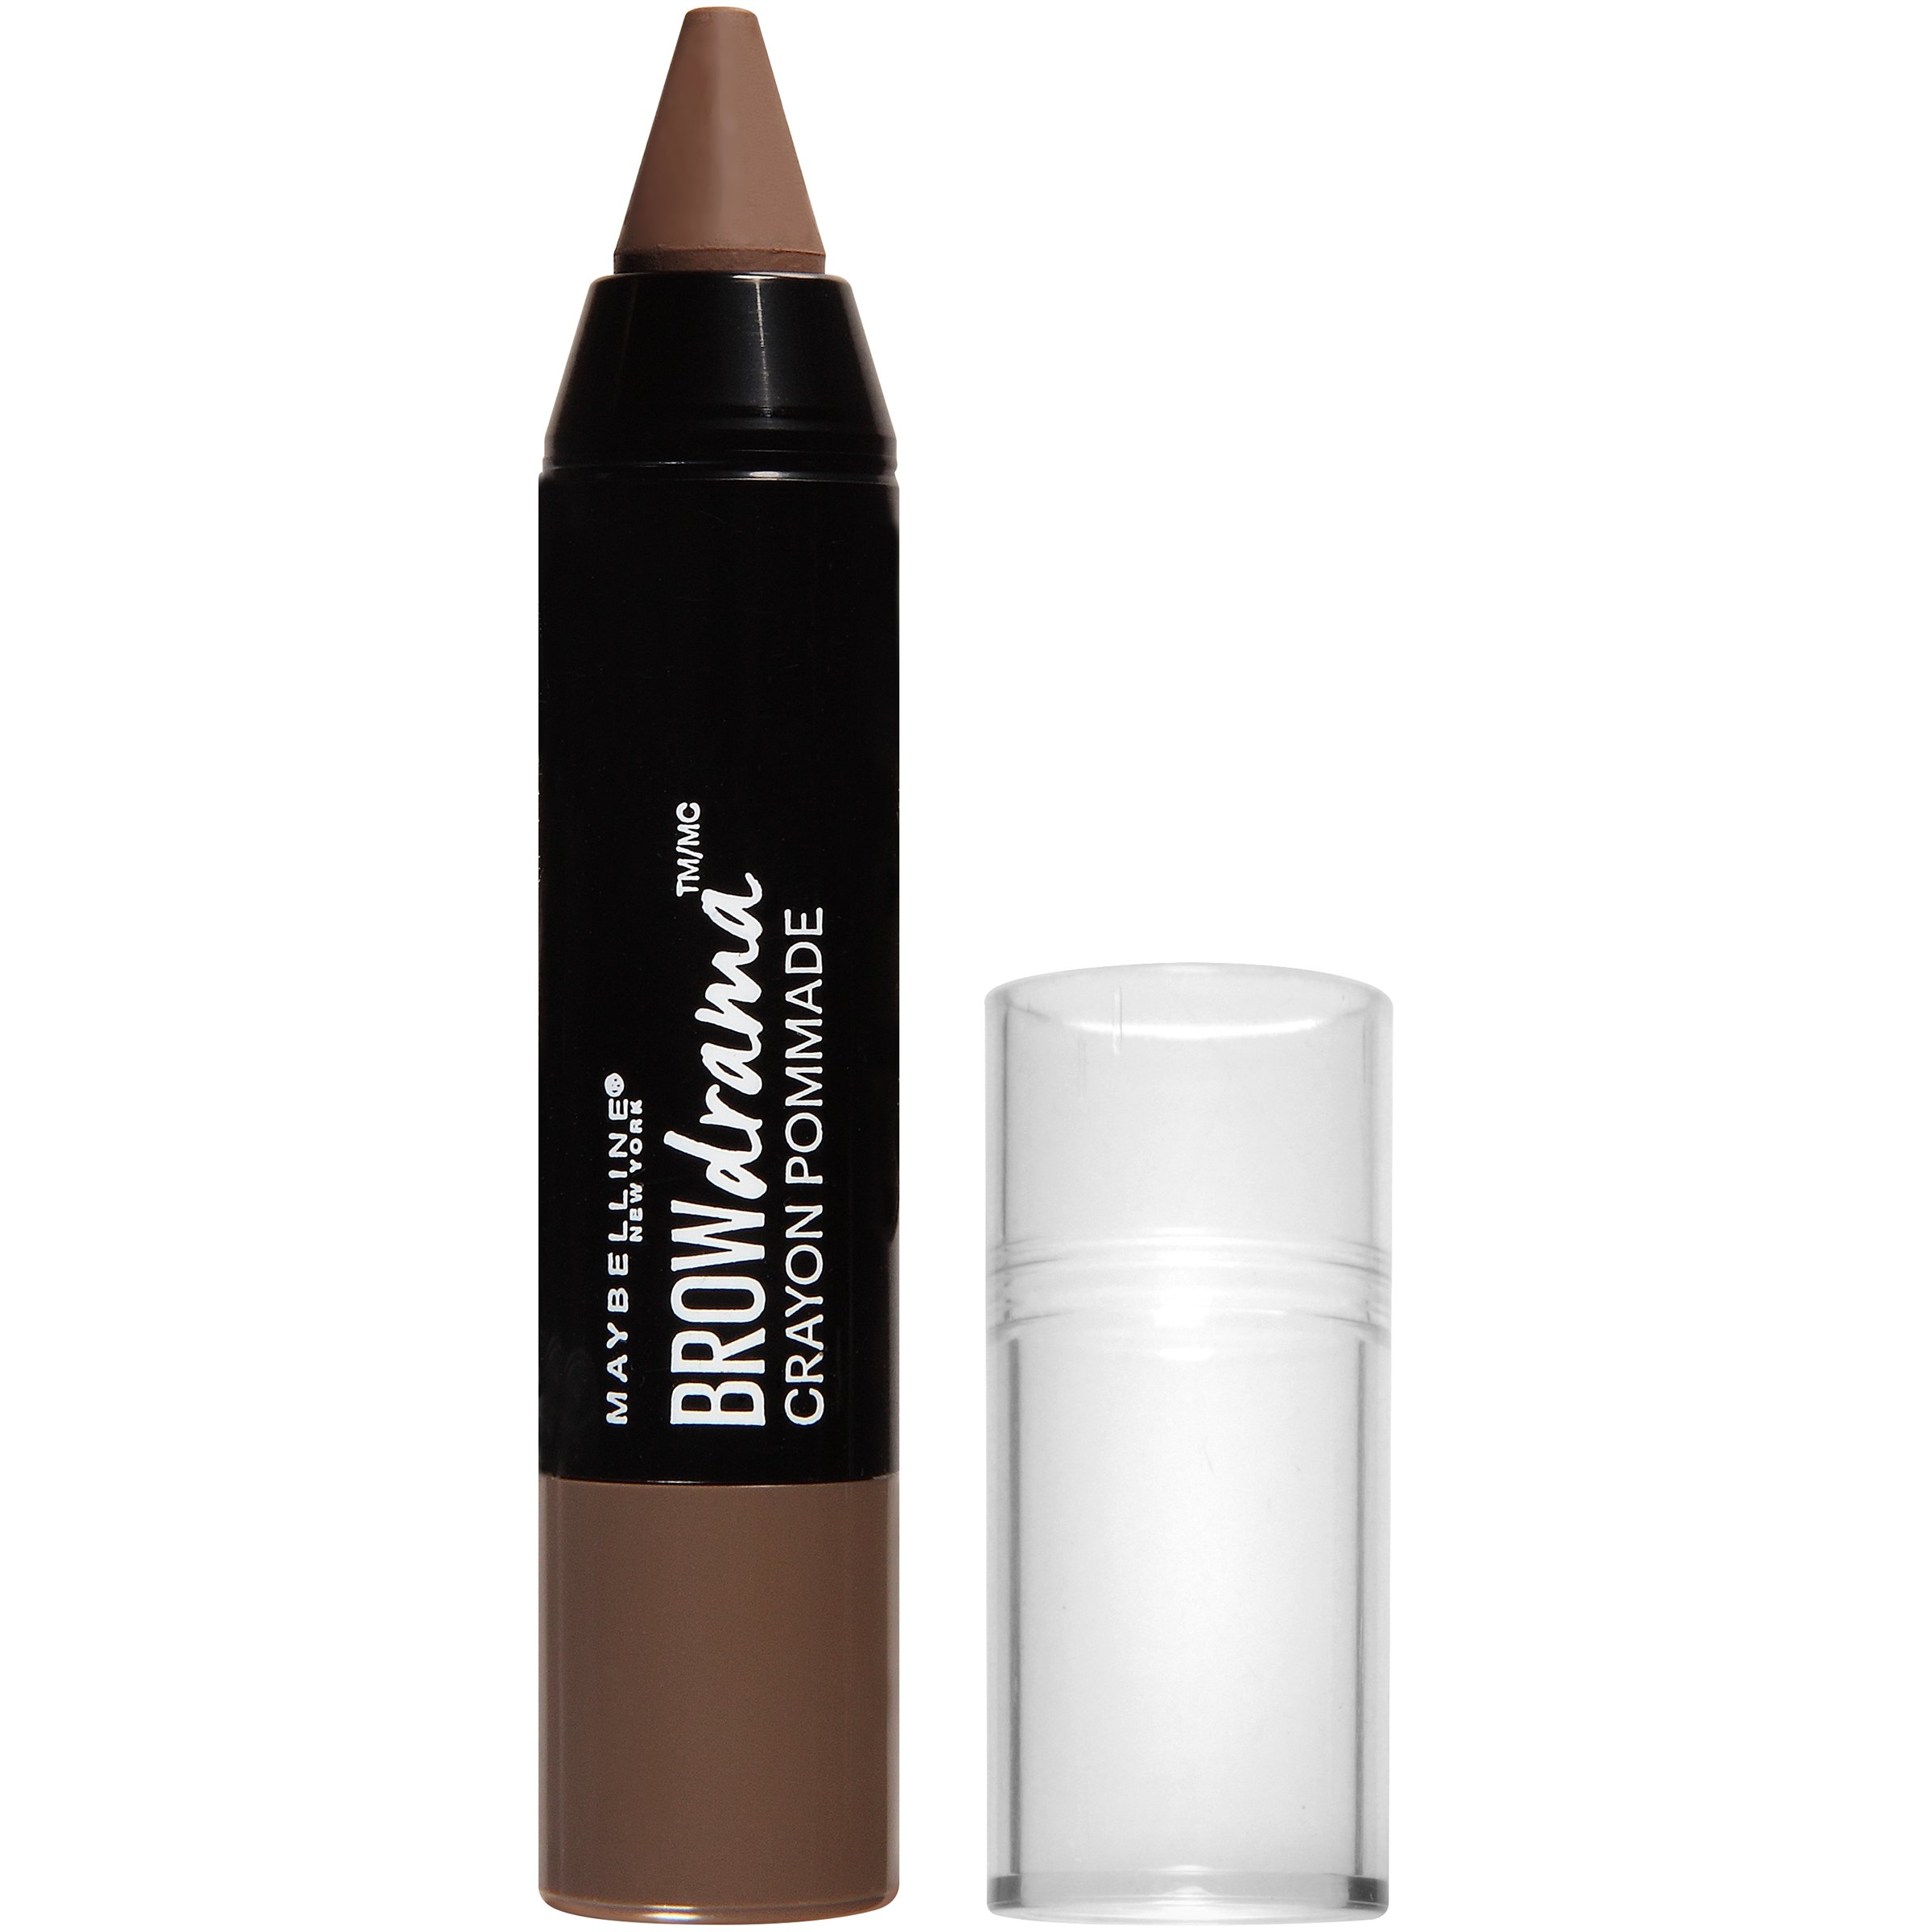 Maybelline Brow Drama Pomade Crayon